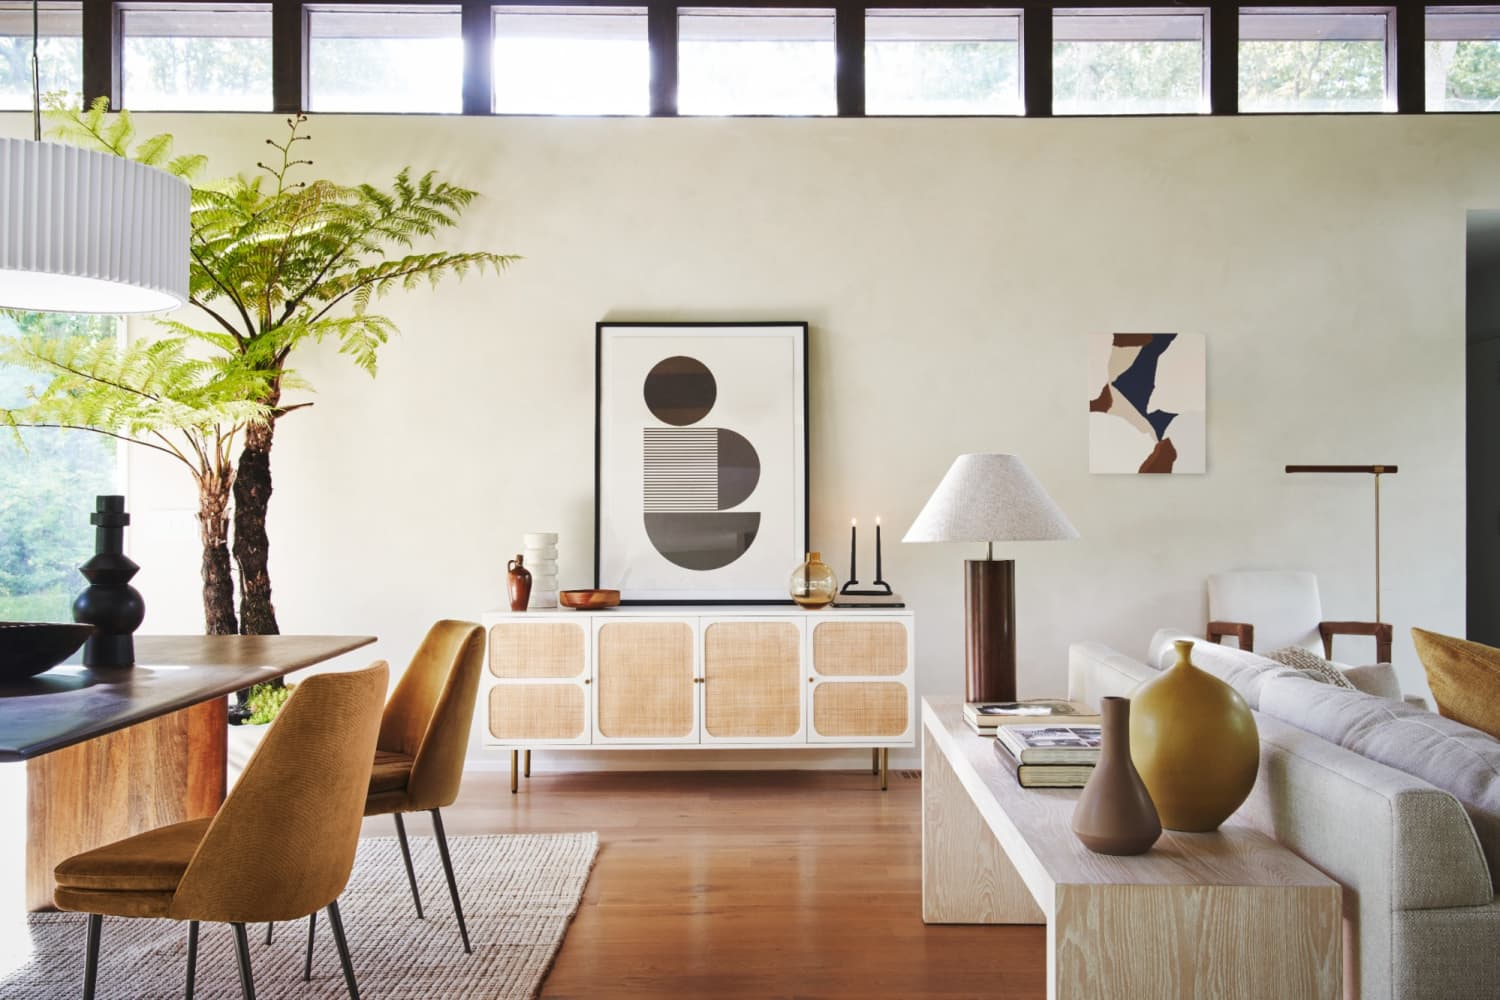 West Elm's Stunning Spring Collection Is a Scandi-Boho Dream Come True